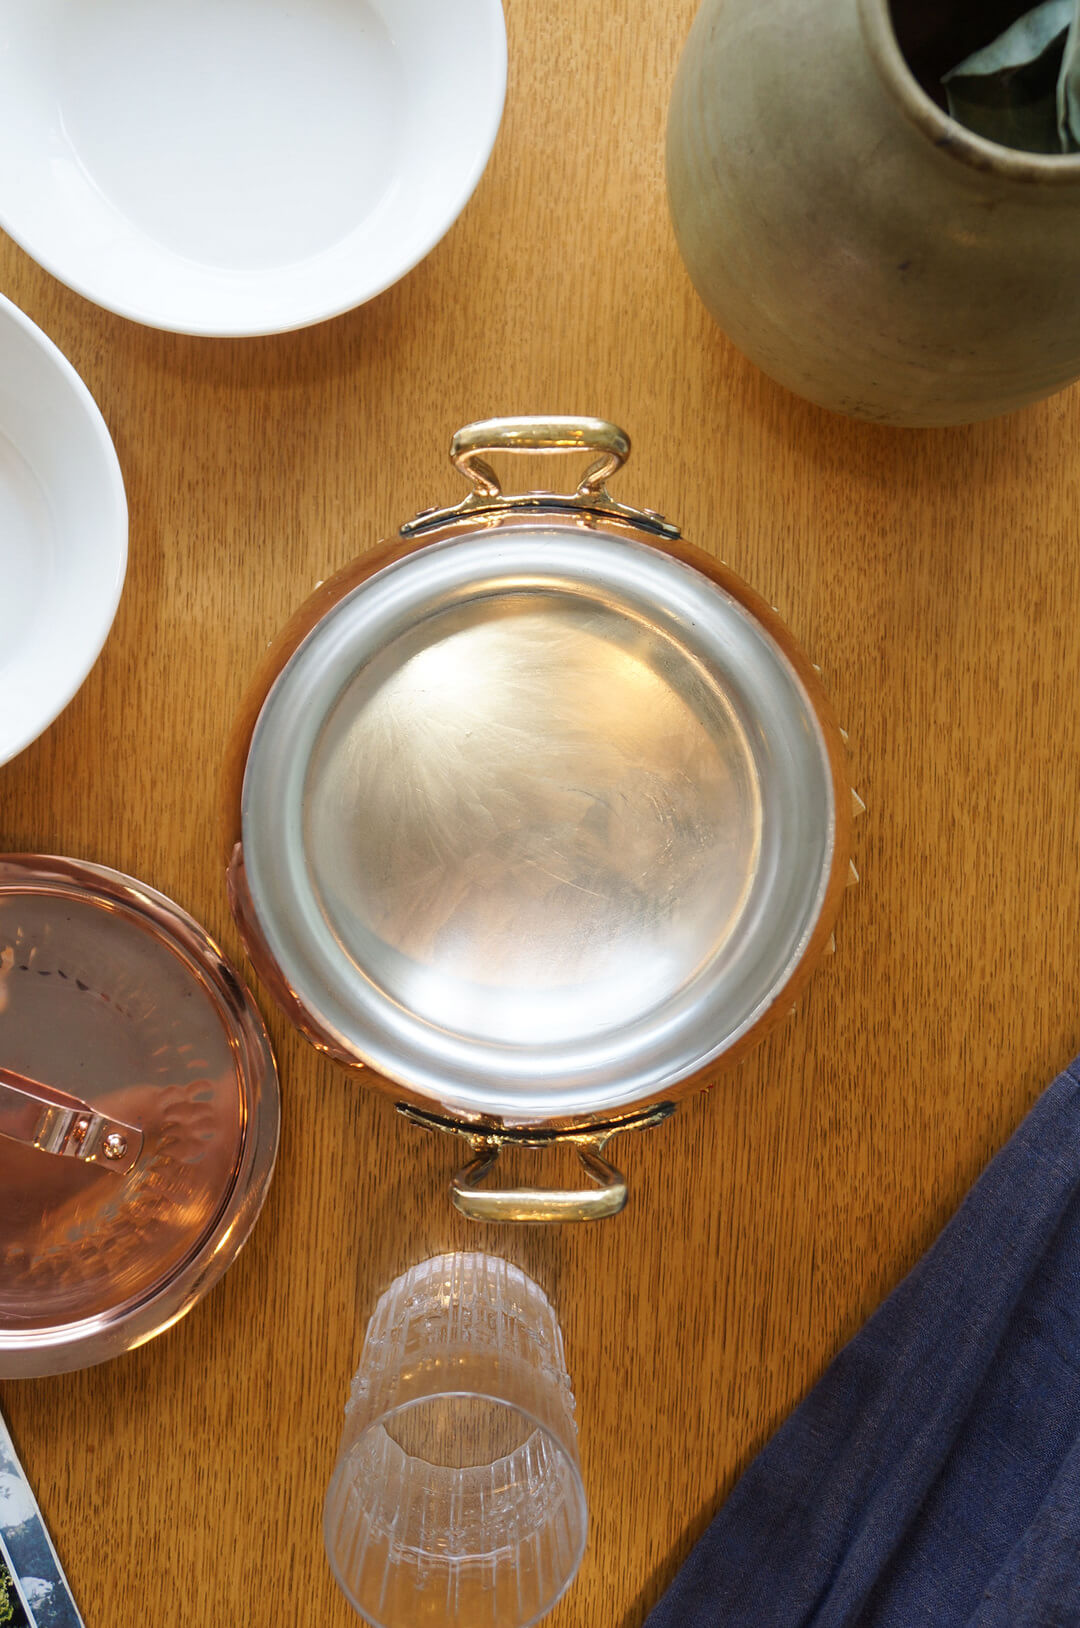 Copper Pot with two handles Kitchen Tool/銅製 両手鍋 キッチン雑貨 料理道具 レトロ